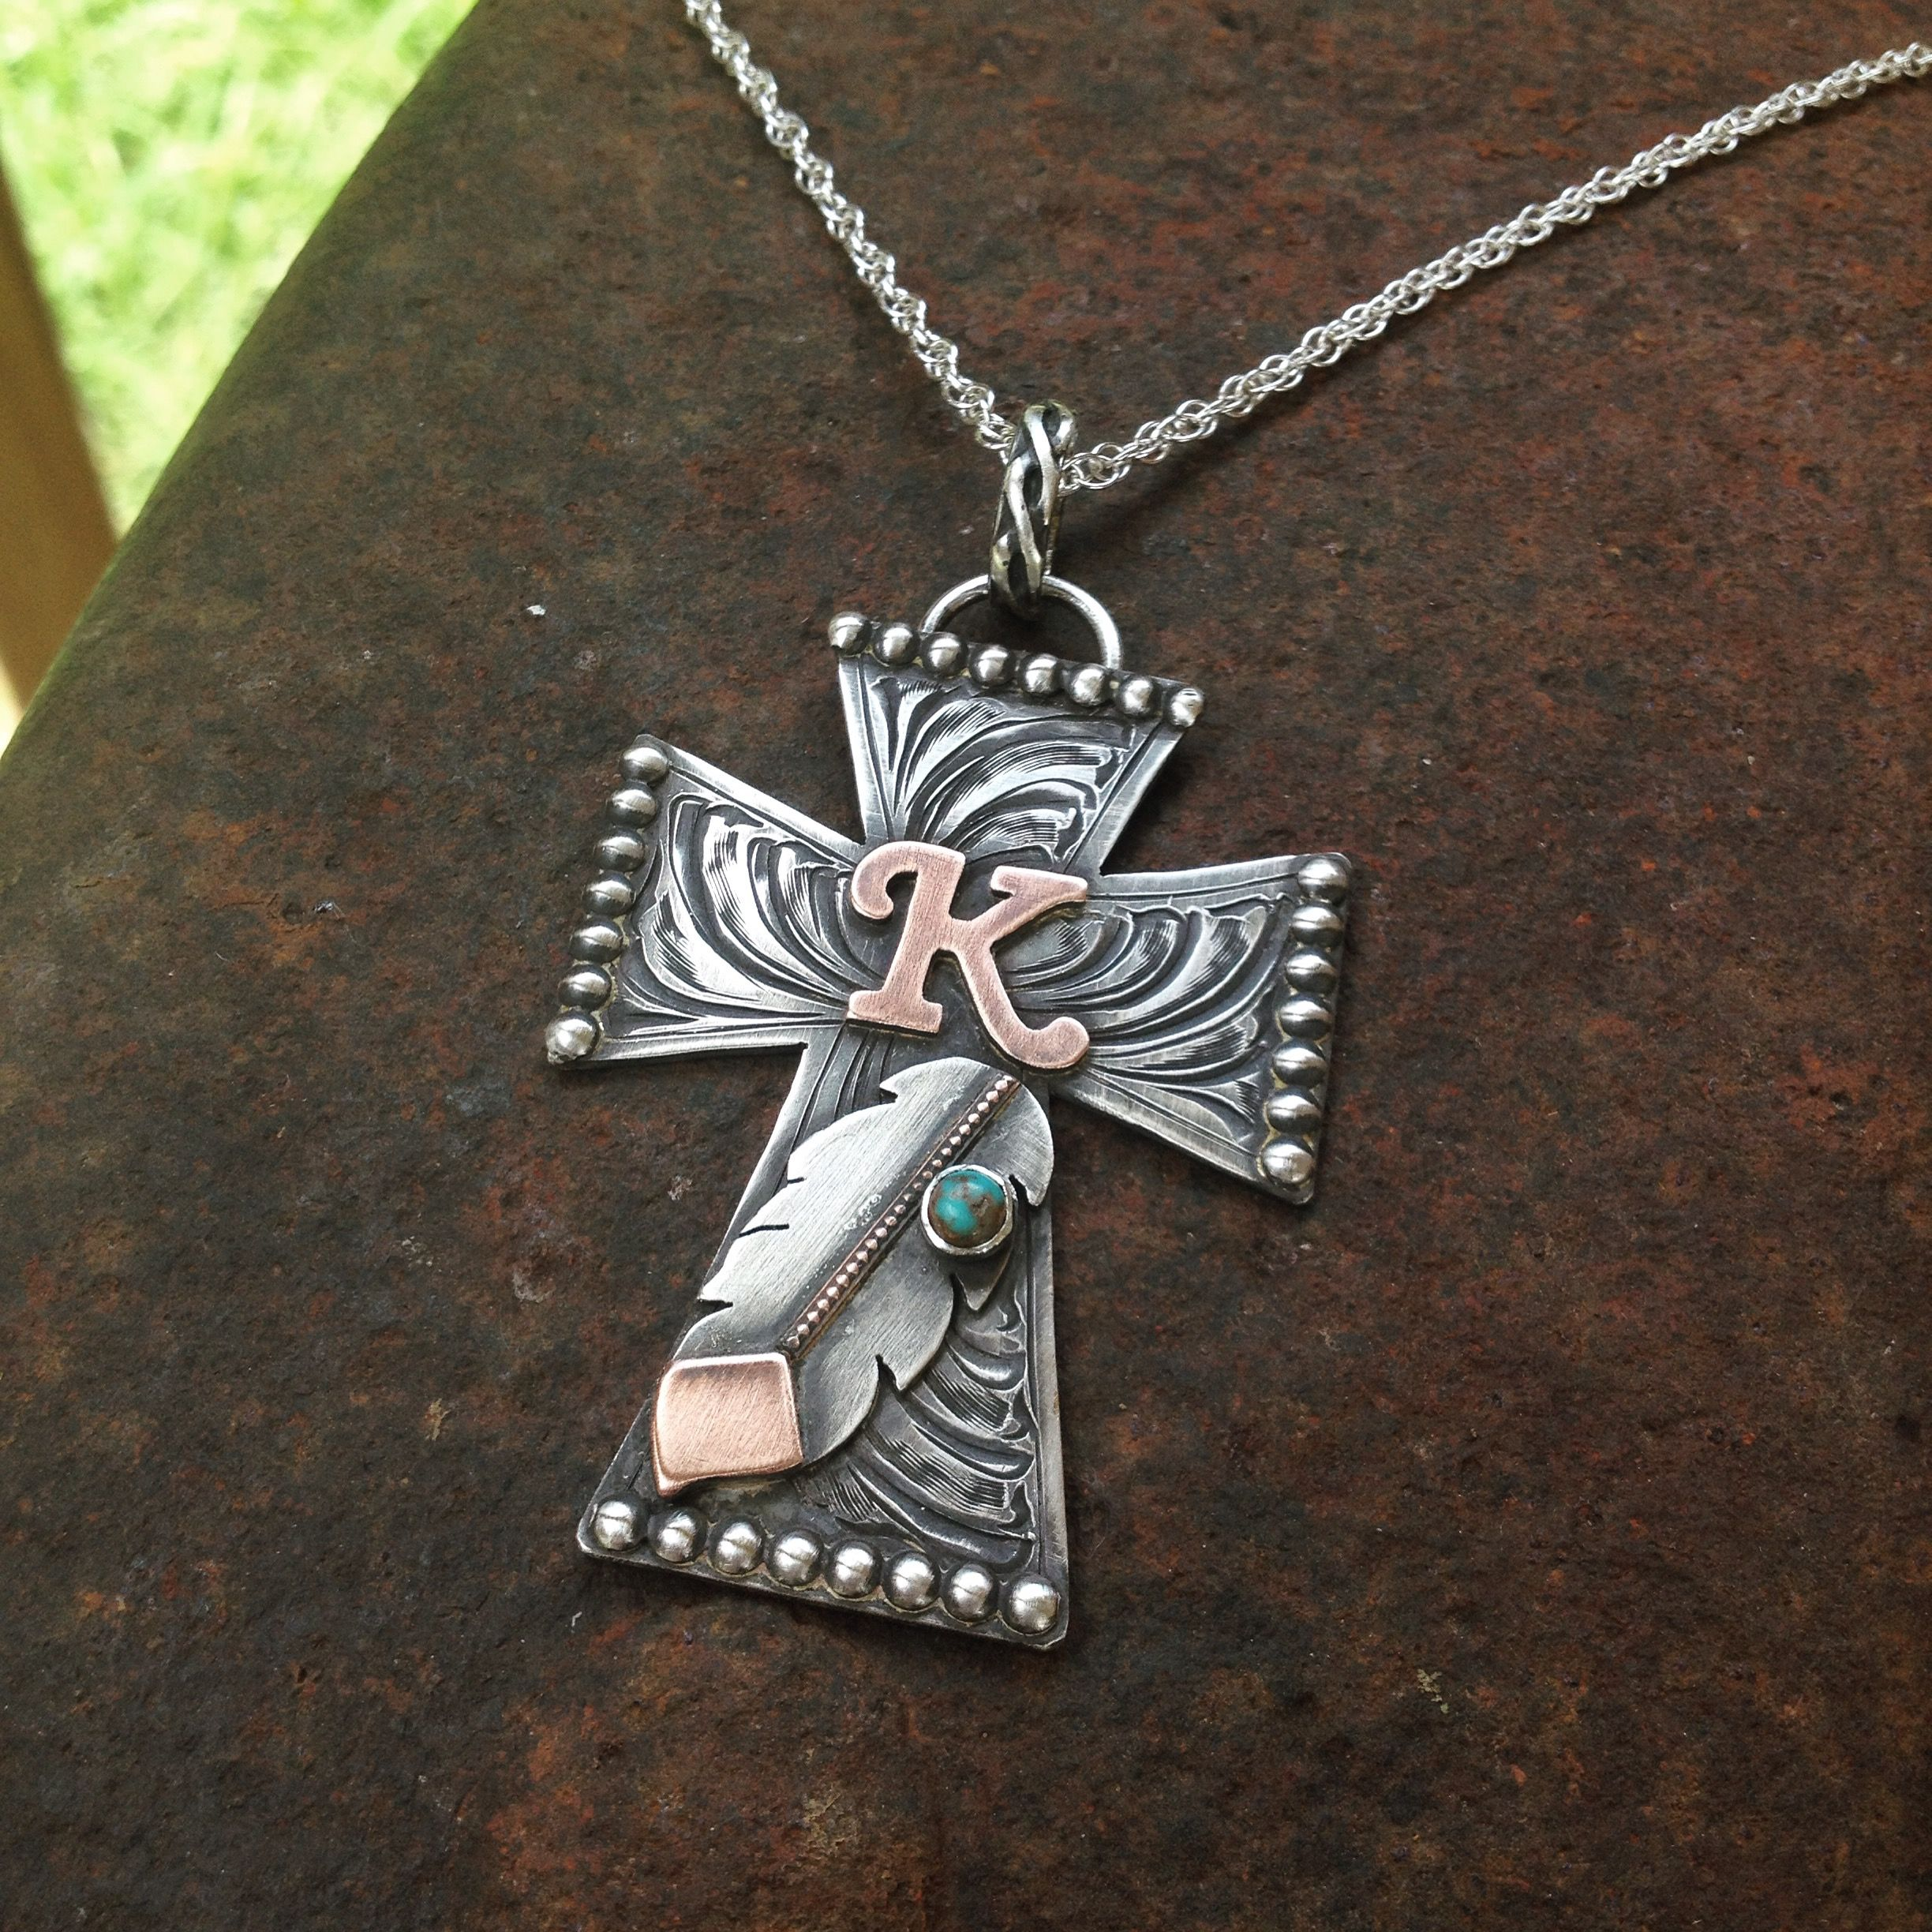 Bling Bling Cross Necklace